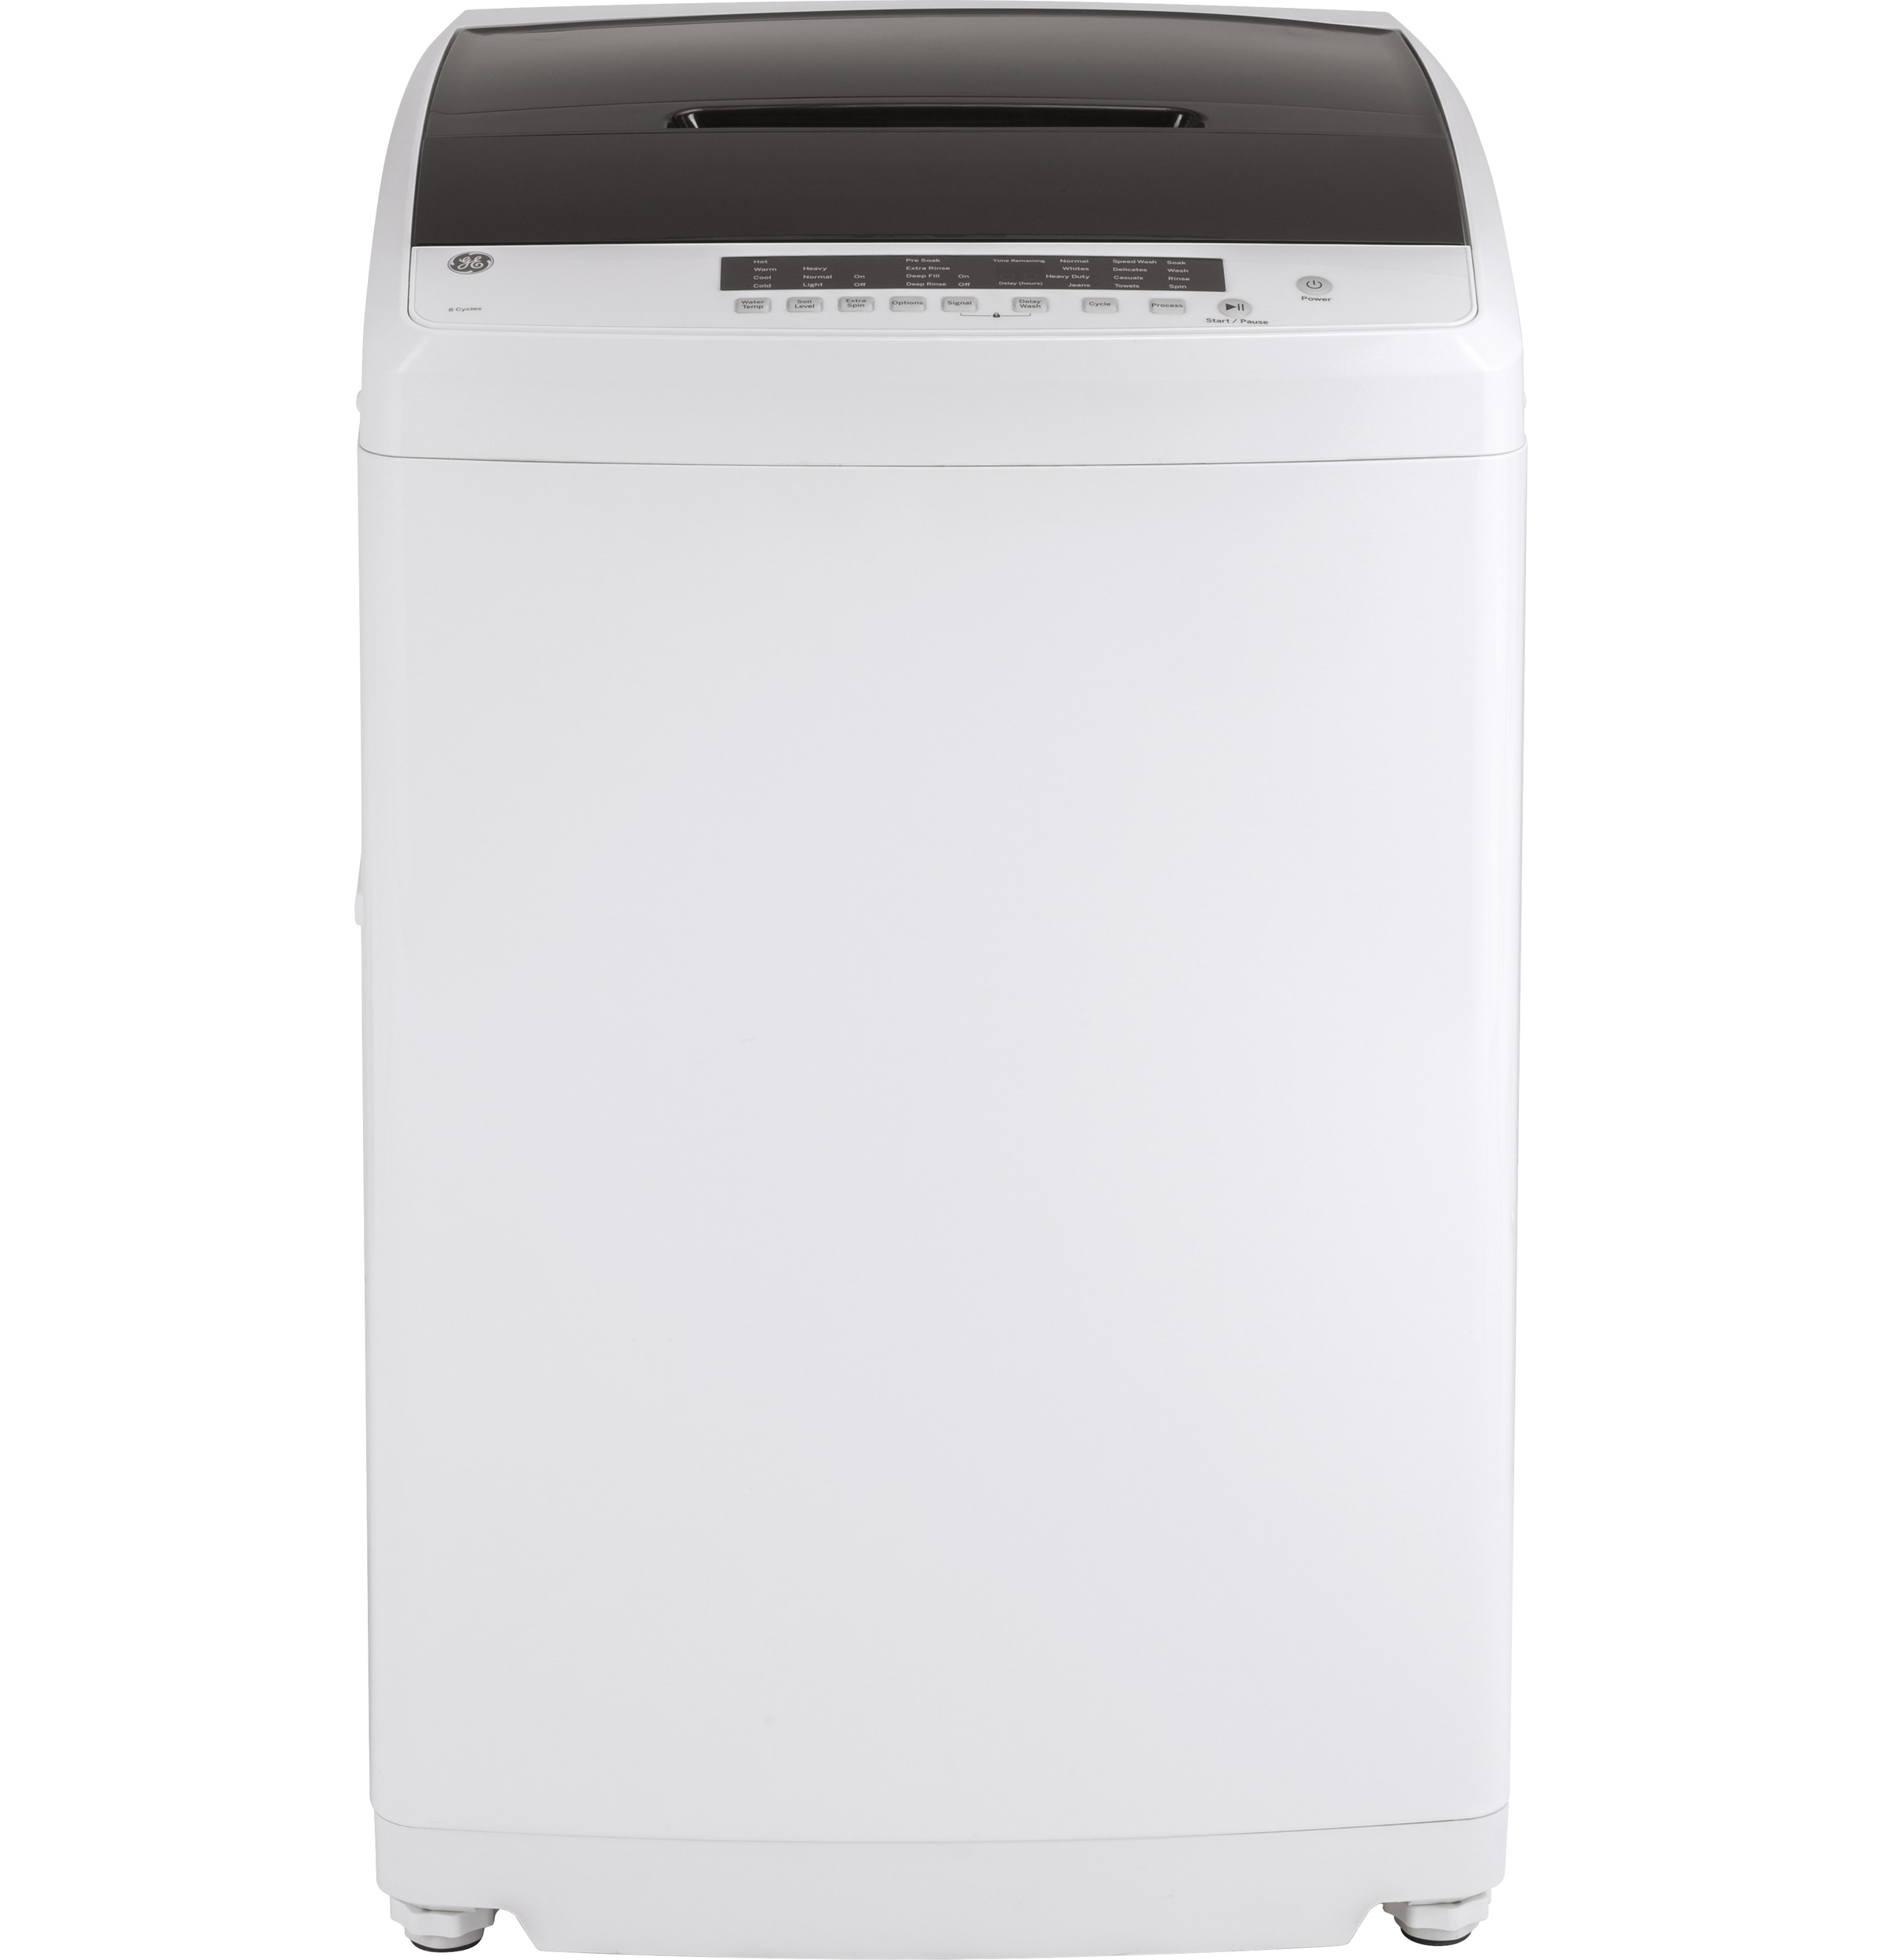 GE Washer in White color showcased by Corbeil Electro Store